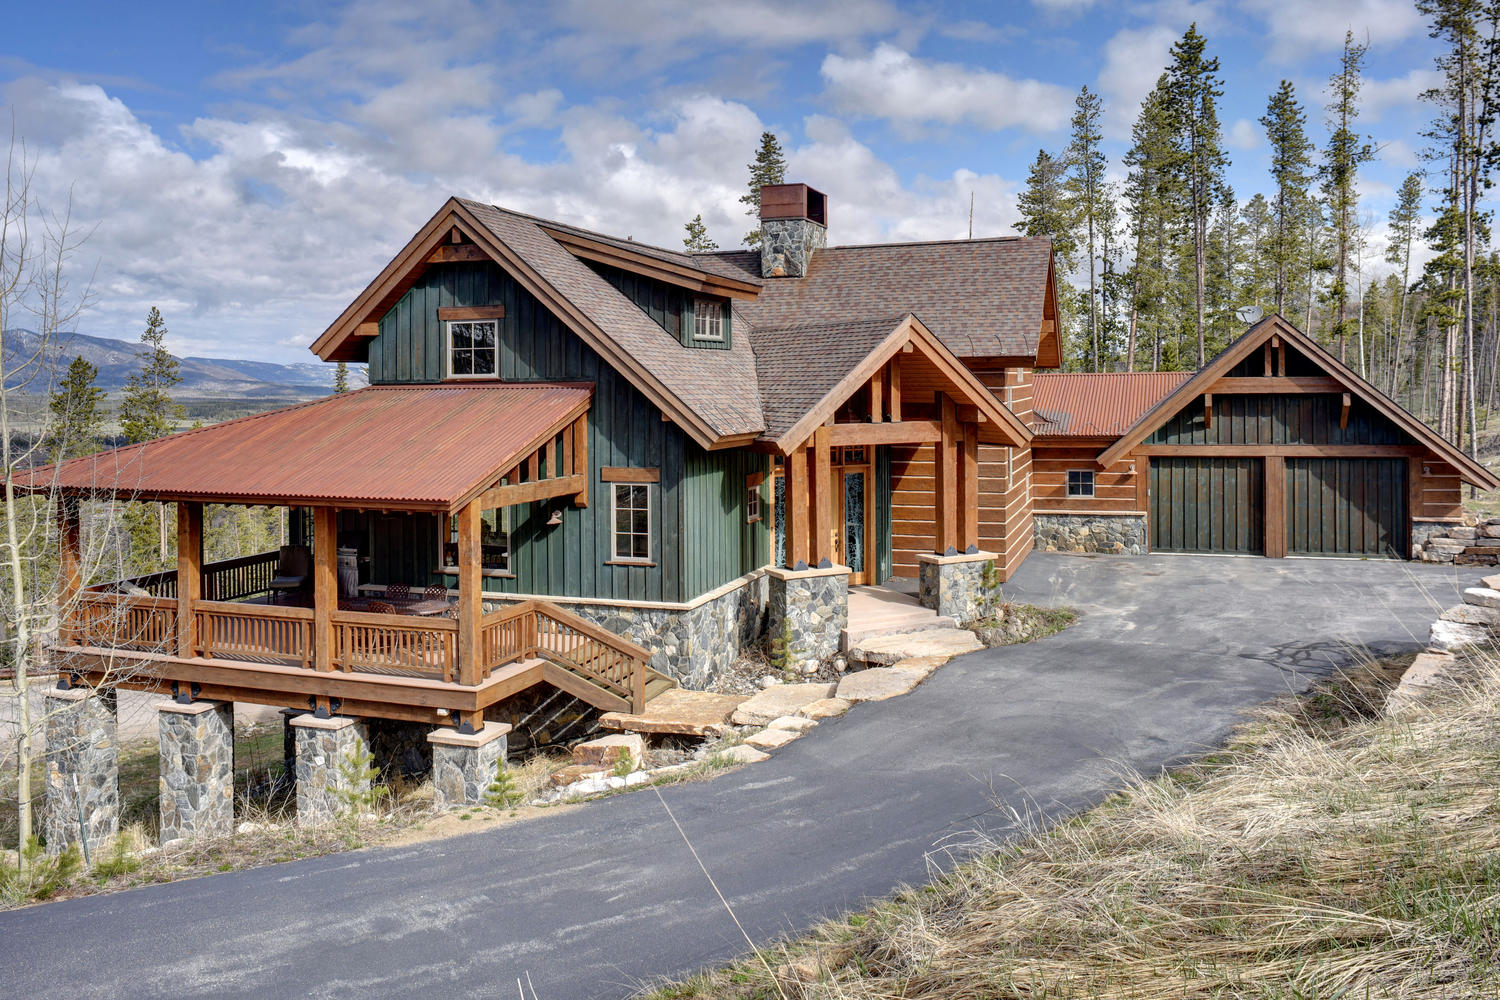 Single Family Home for Sale at Sunning Custom Home 929 Pioneer Trail Winter Park, Colorado, 80442 United States